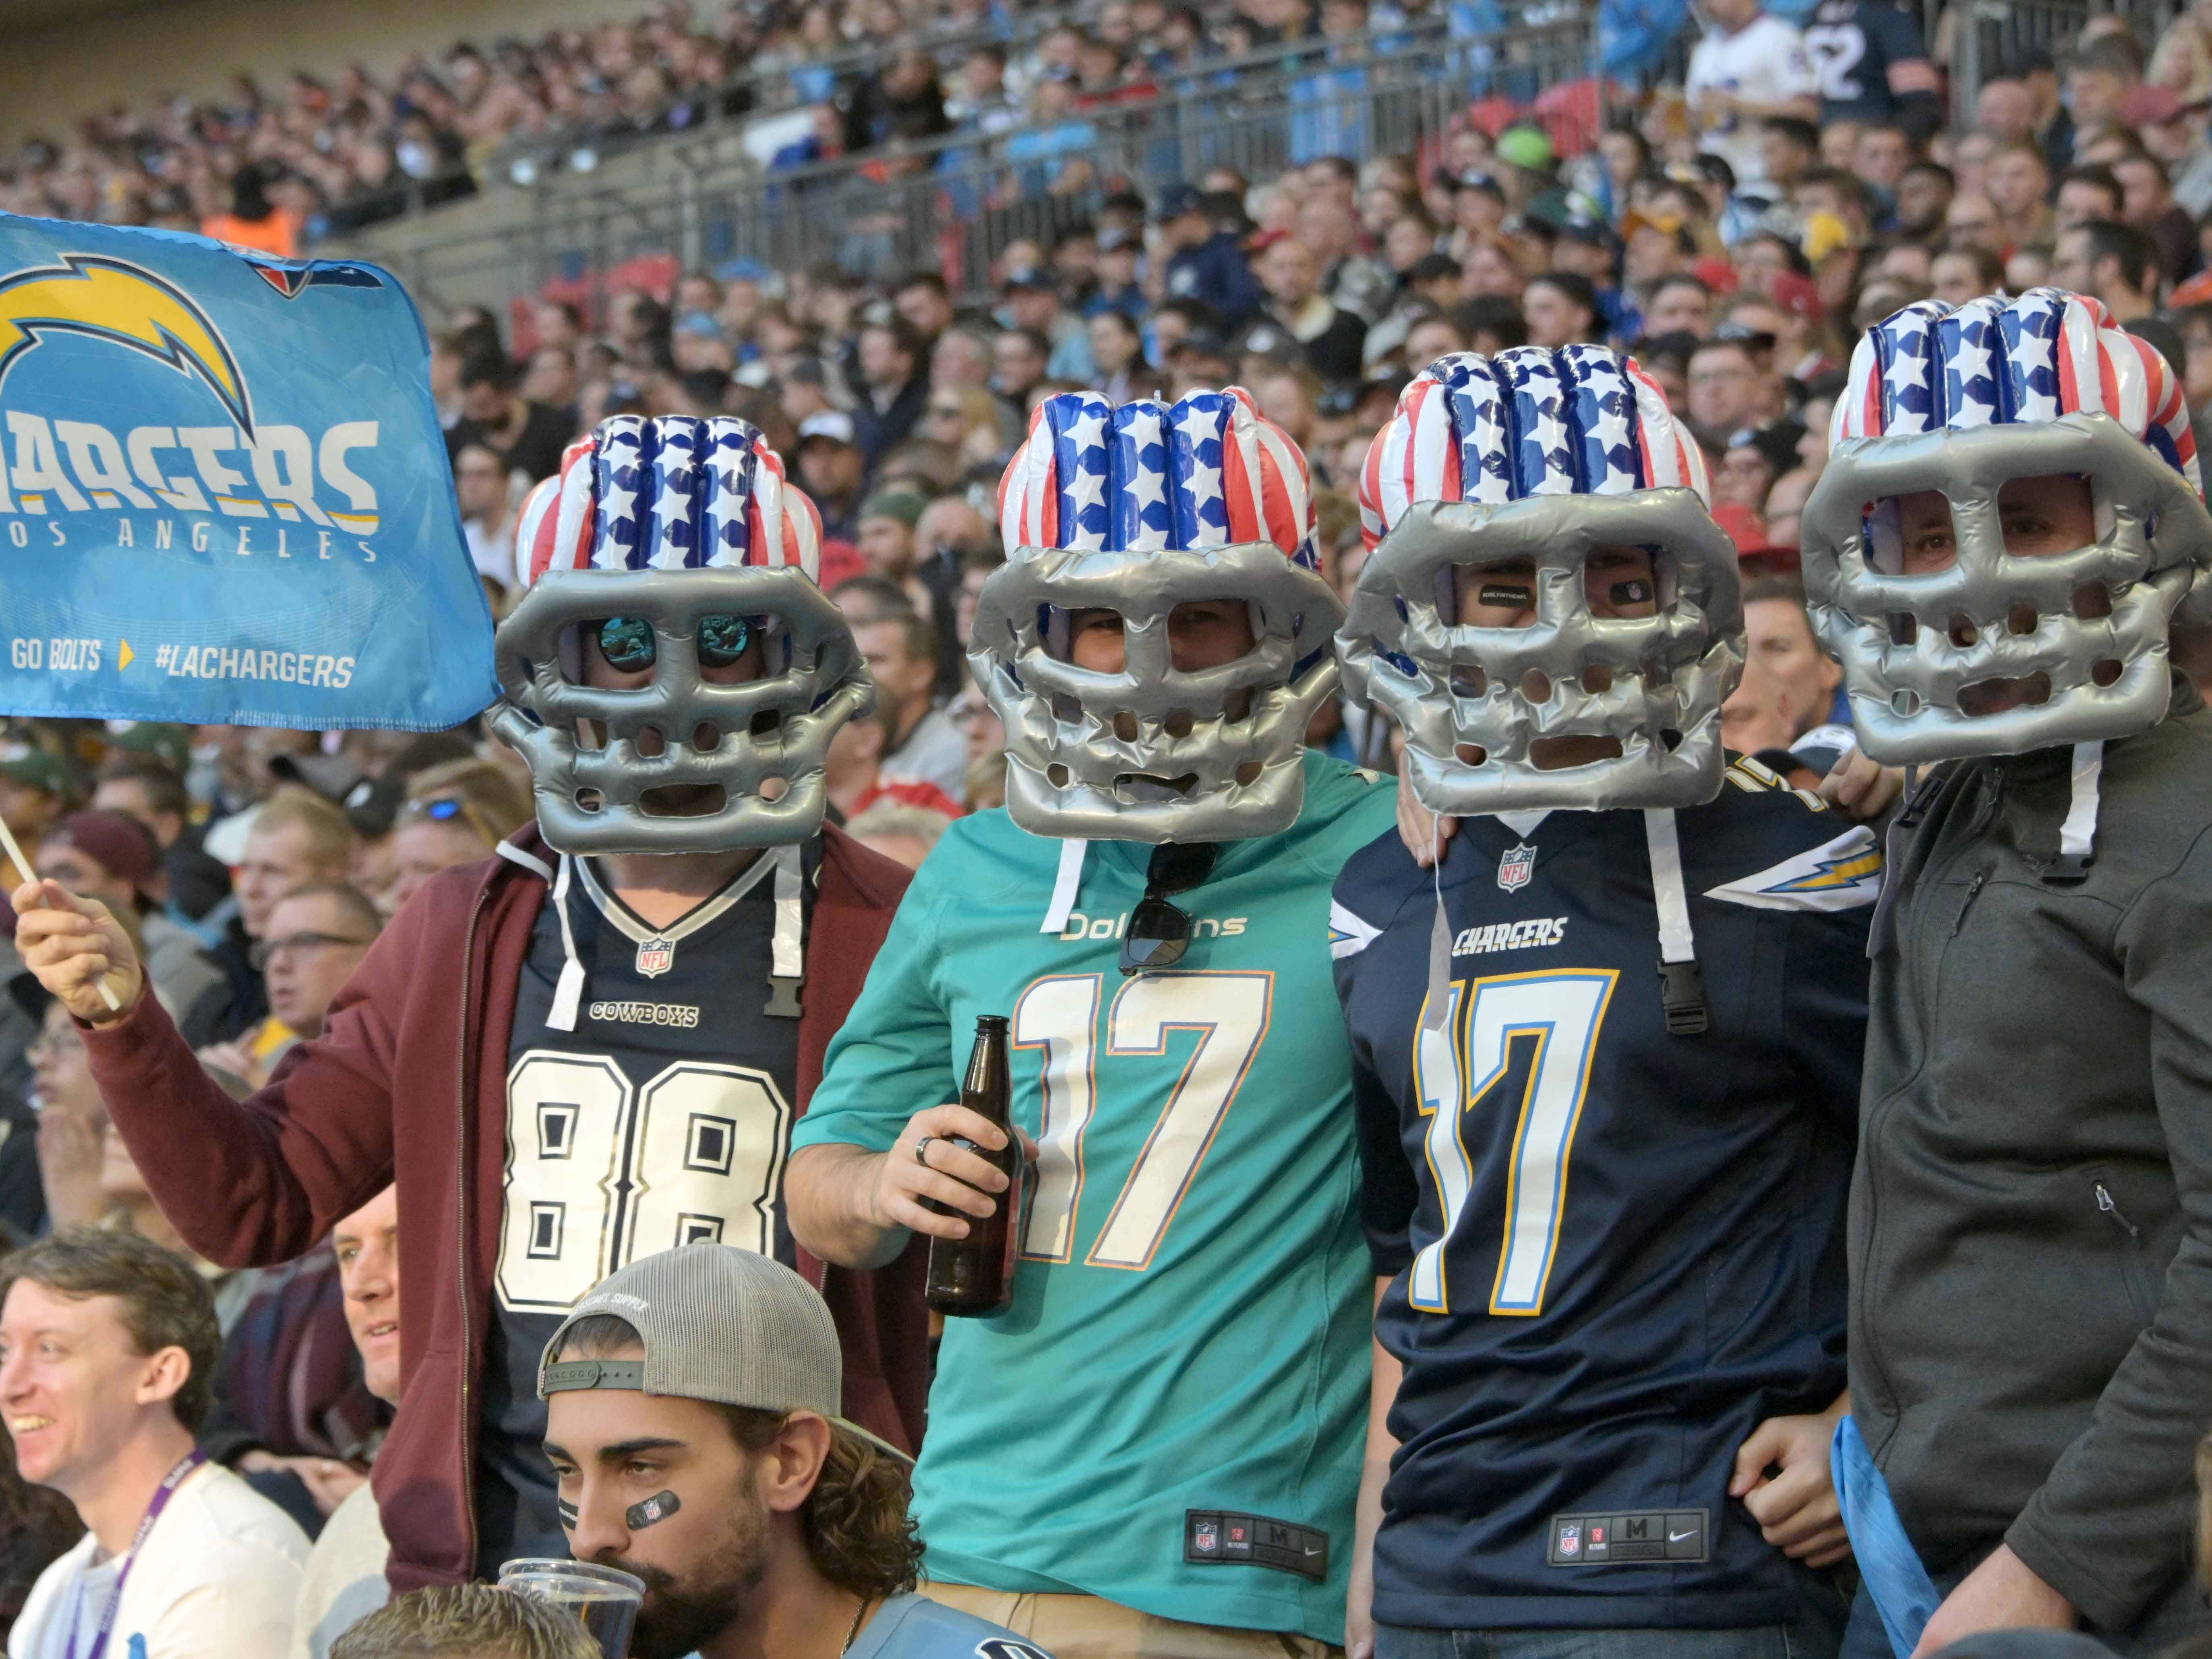 Fans pose with a Los Angeles Chargers flag during an NFL International Series game against the Tennessee Titans  at Wembley Stadium.